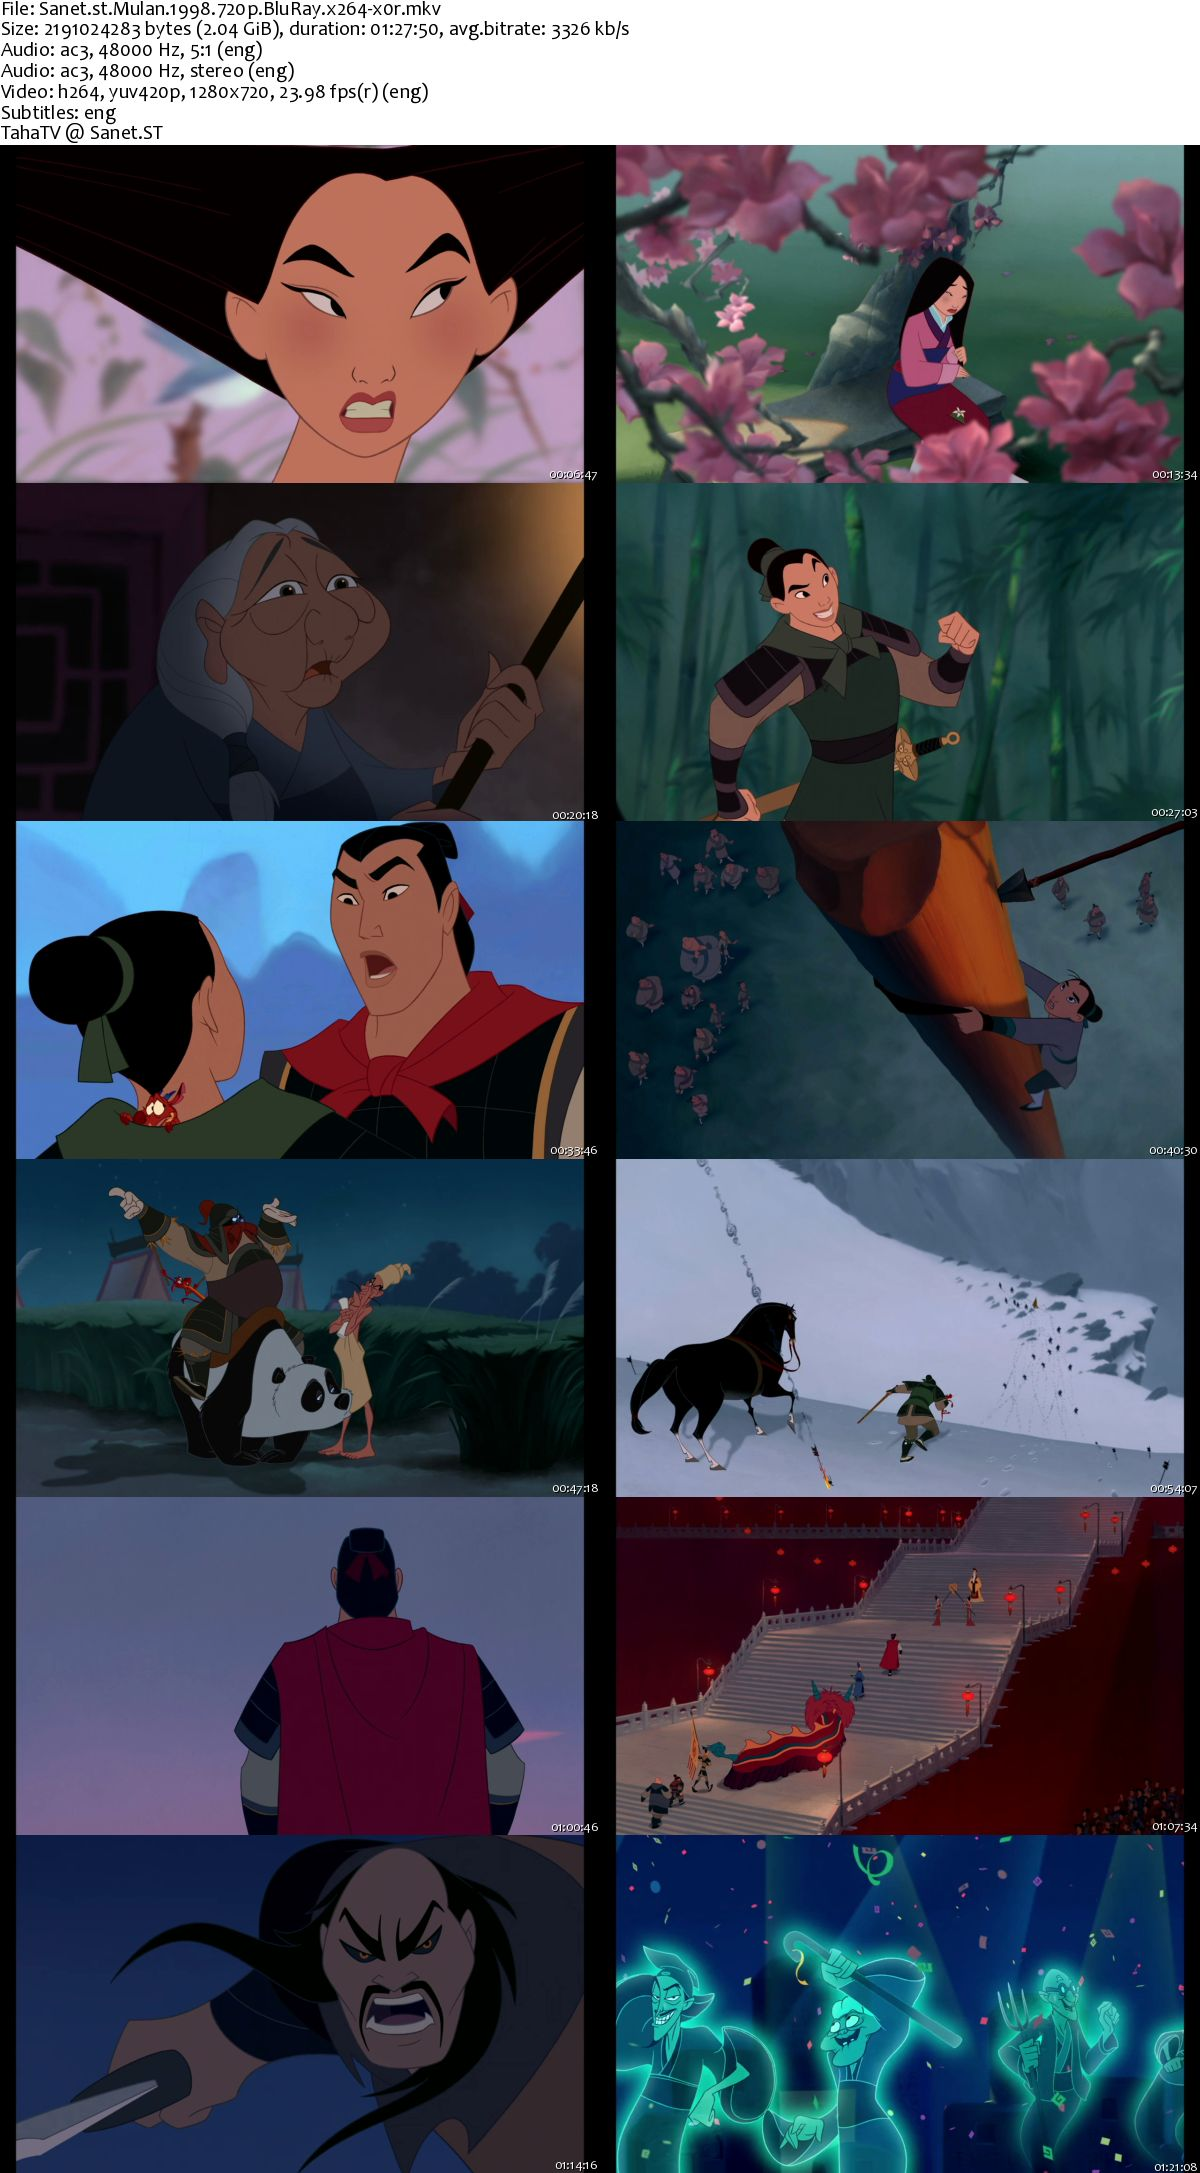 Download Mulan 1998 720p Bluray X264-x0r